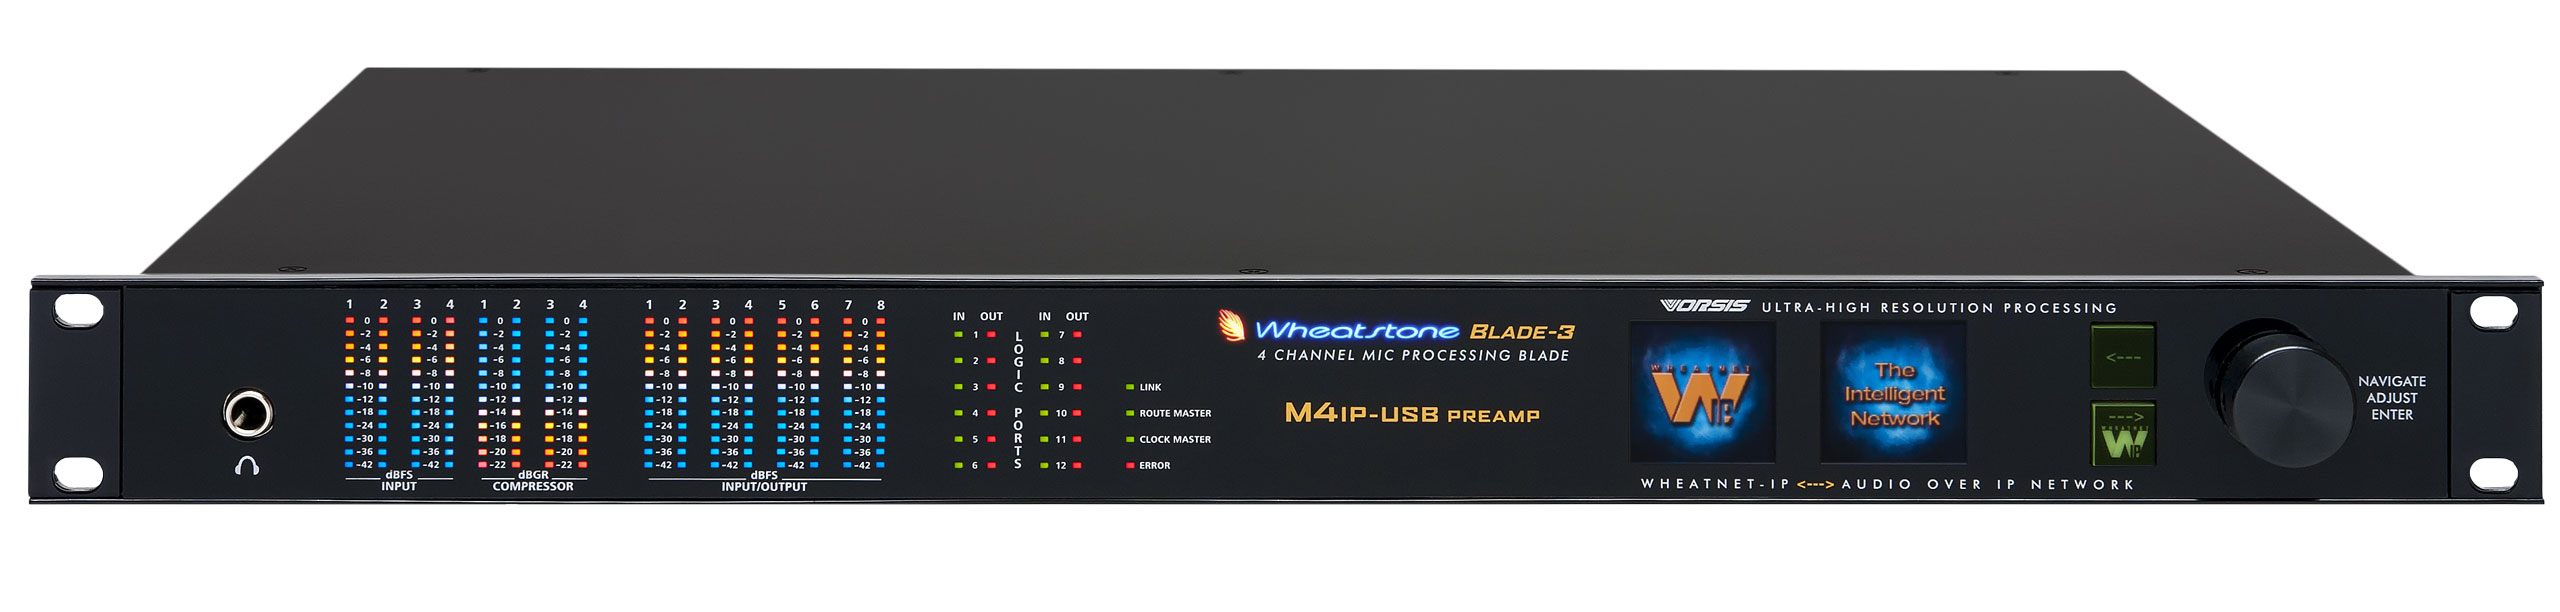 M4-IP USB 4-CHANNEL VOICE/MIC AUDIO PROCESSOR